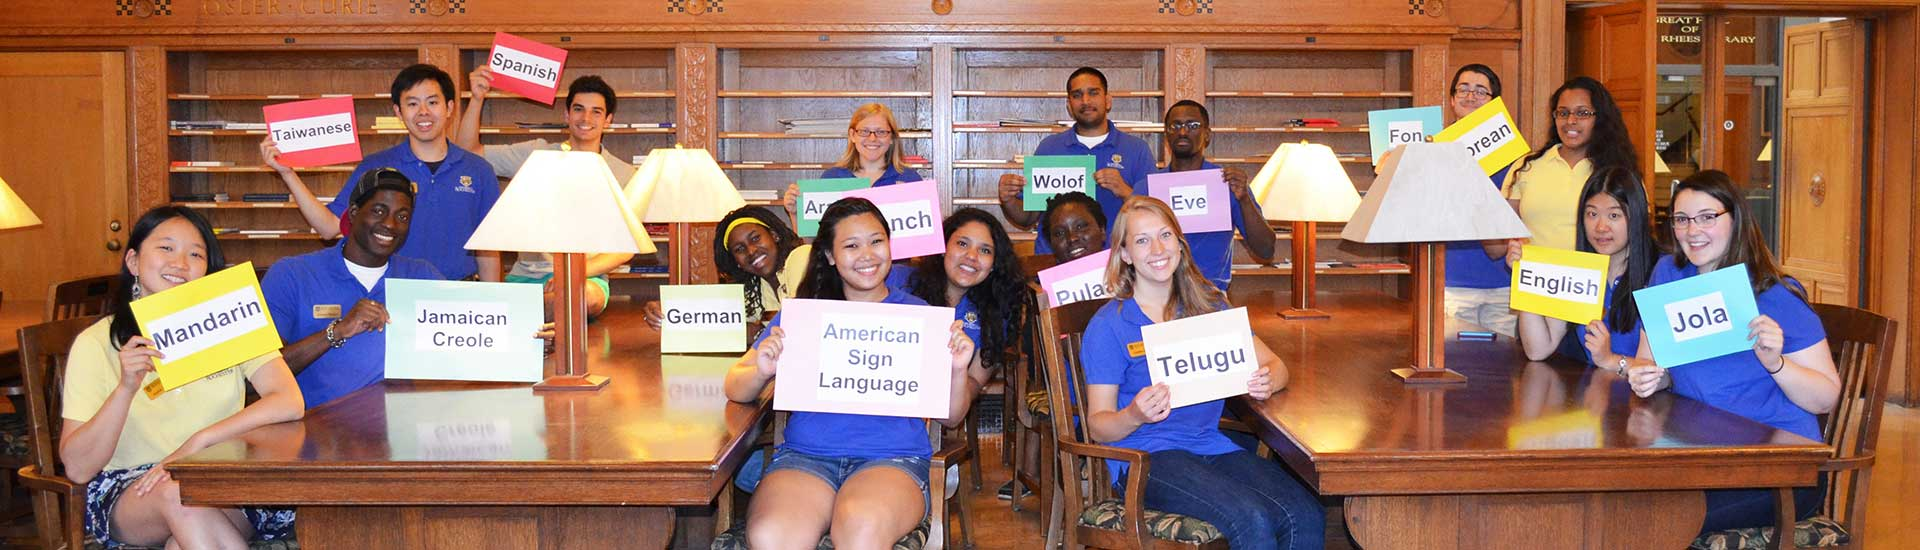 Students pose with signs of different languages